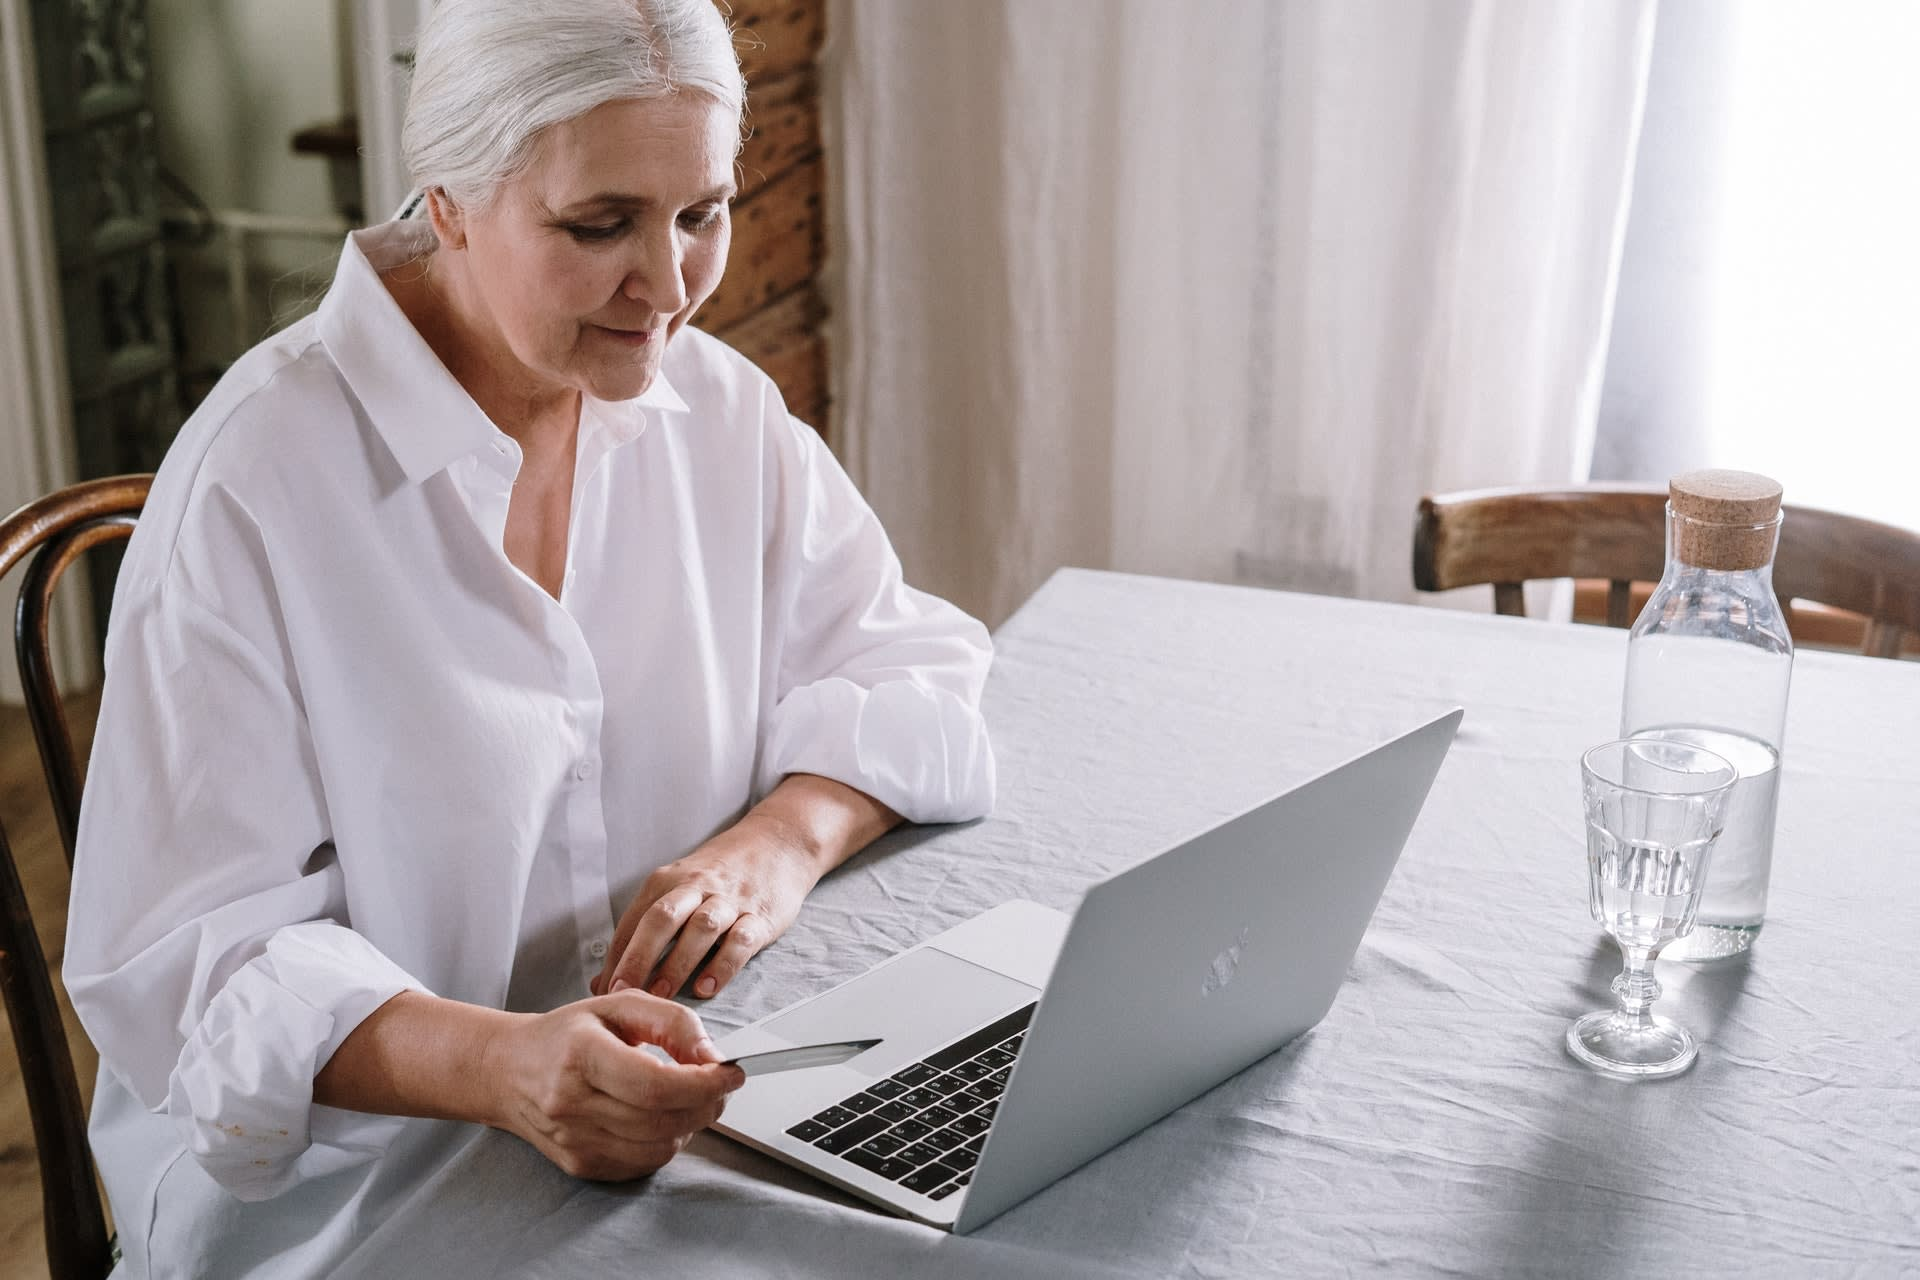 Women's personal pensions not enough to cover care